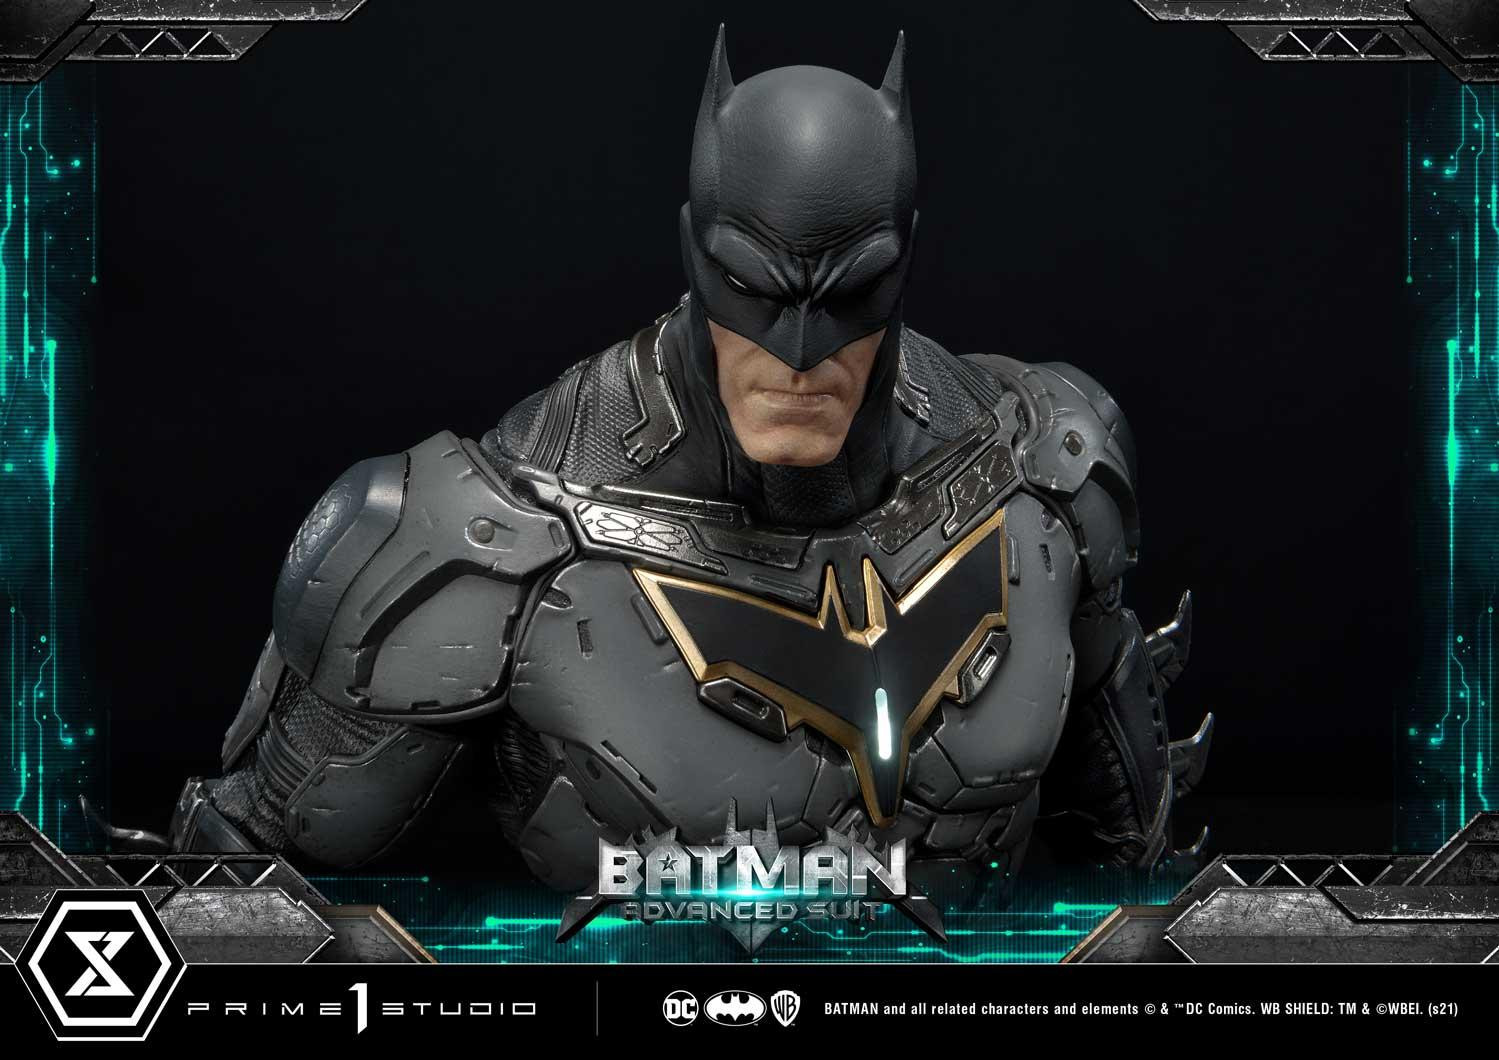 PRÉ VENDA: Estátua Batman Advanced Suit: Dc Comics  - Statue Prime 1 Studio